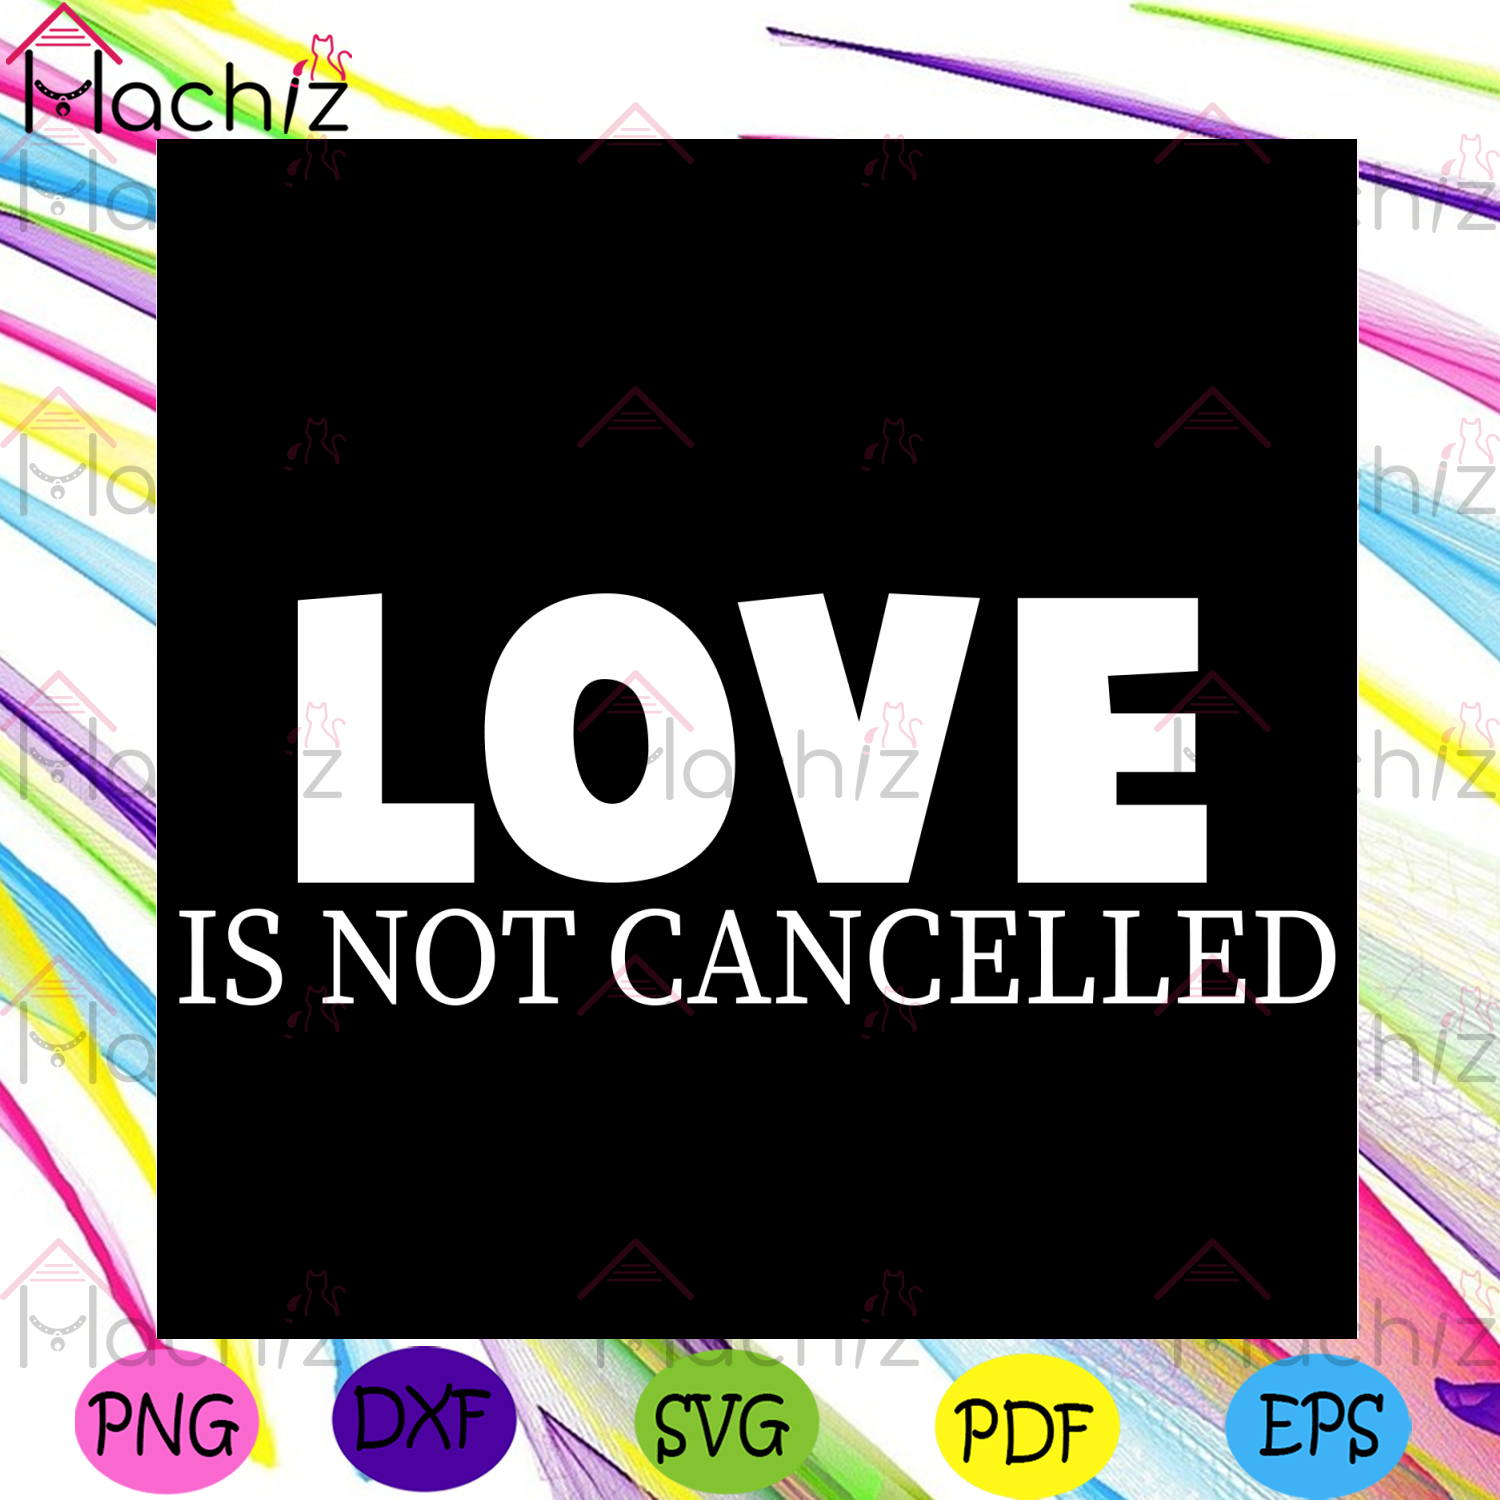 Love Is Not Cancelled Svg, Trending Svg, Love Svg, Love Quotes Svg, Love Gifts Svg, Cancel Svg, Heart Svg, Sweet Heart Svg, Heart Gifts Svg, Couple Svg, Couple Gifts Svg, Quotes Svg, Trendy Svg, Saying Svg